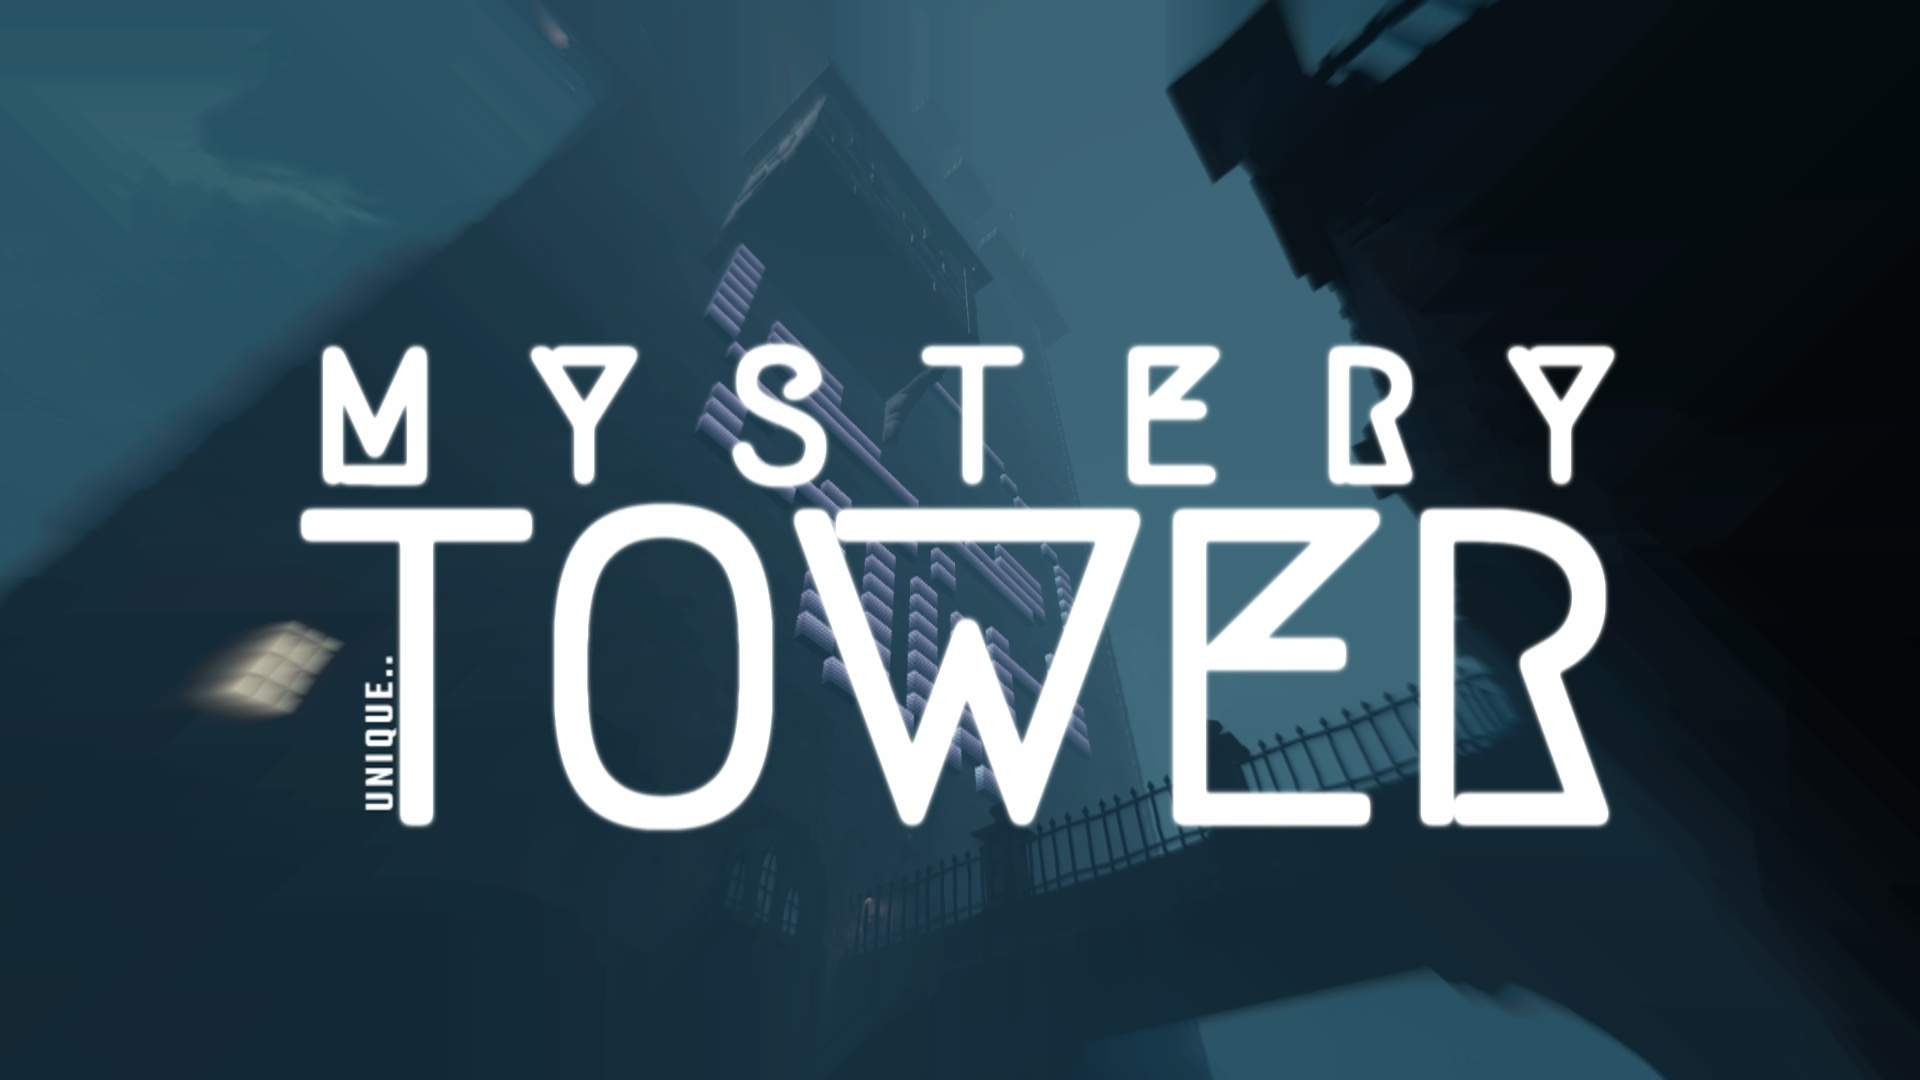 MYSTERY TOWER